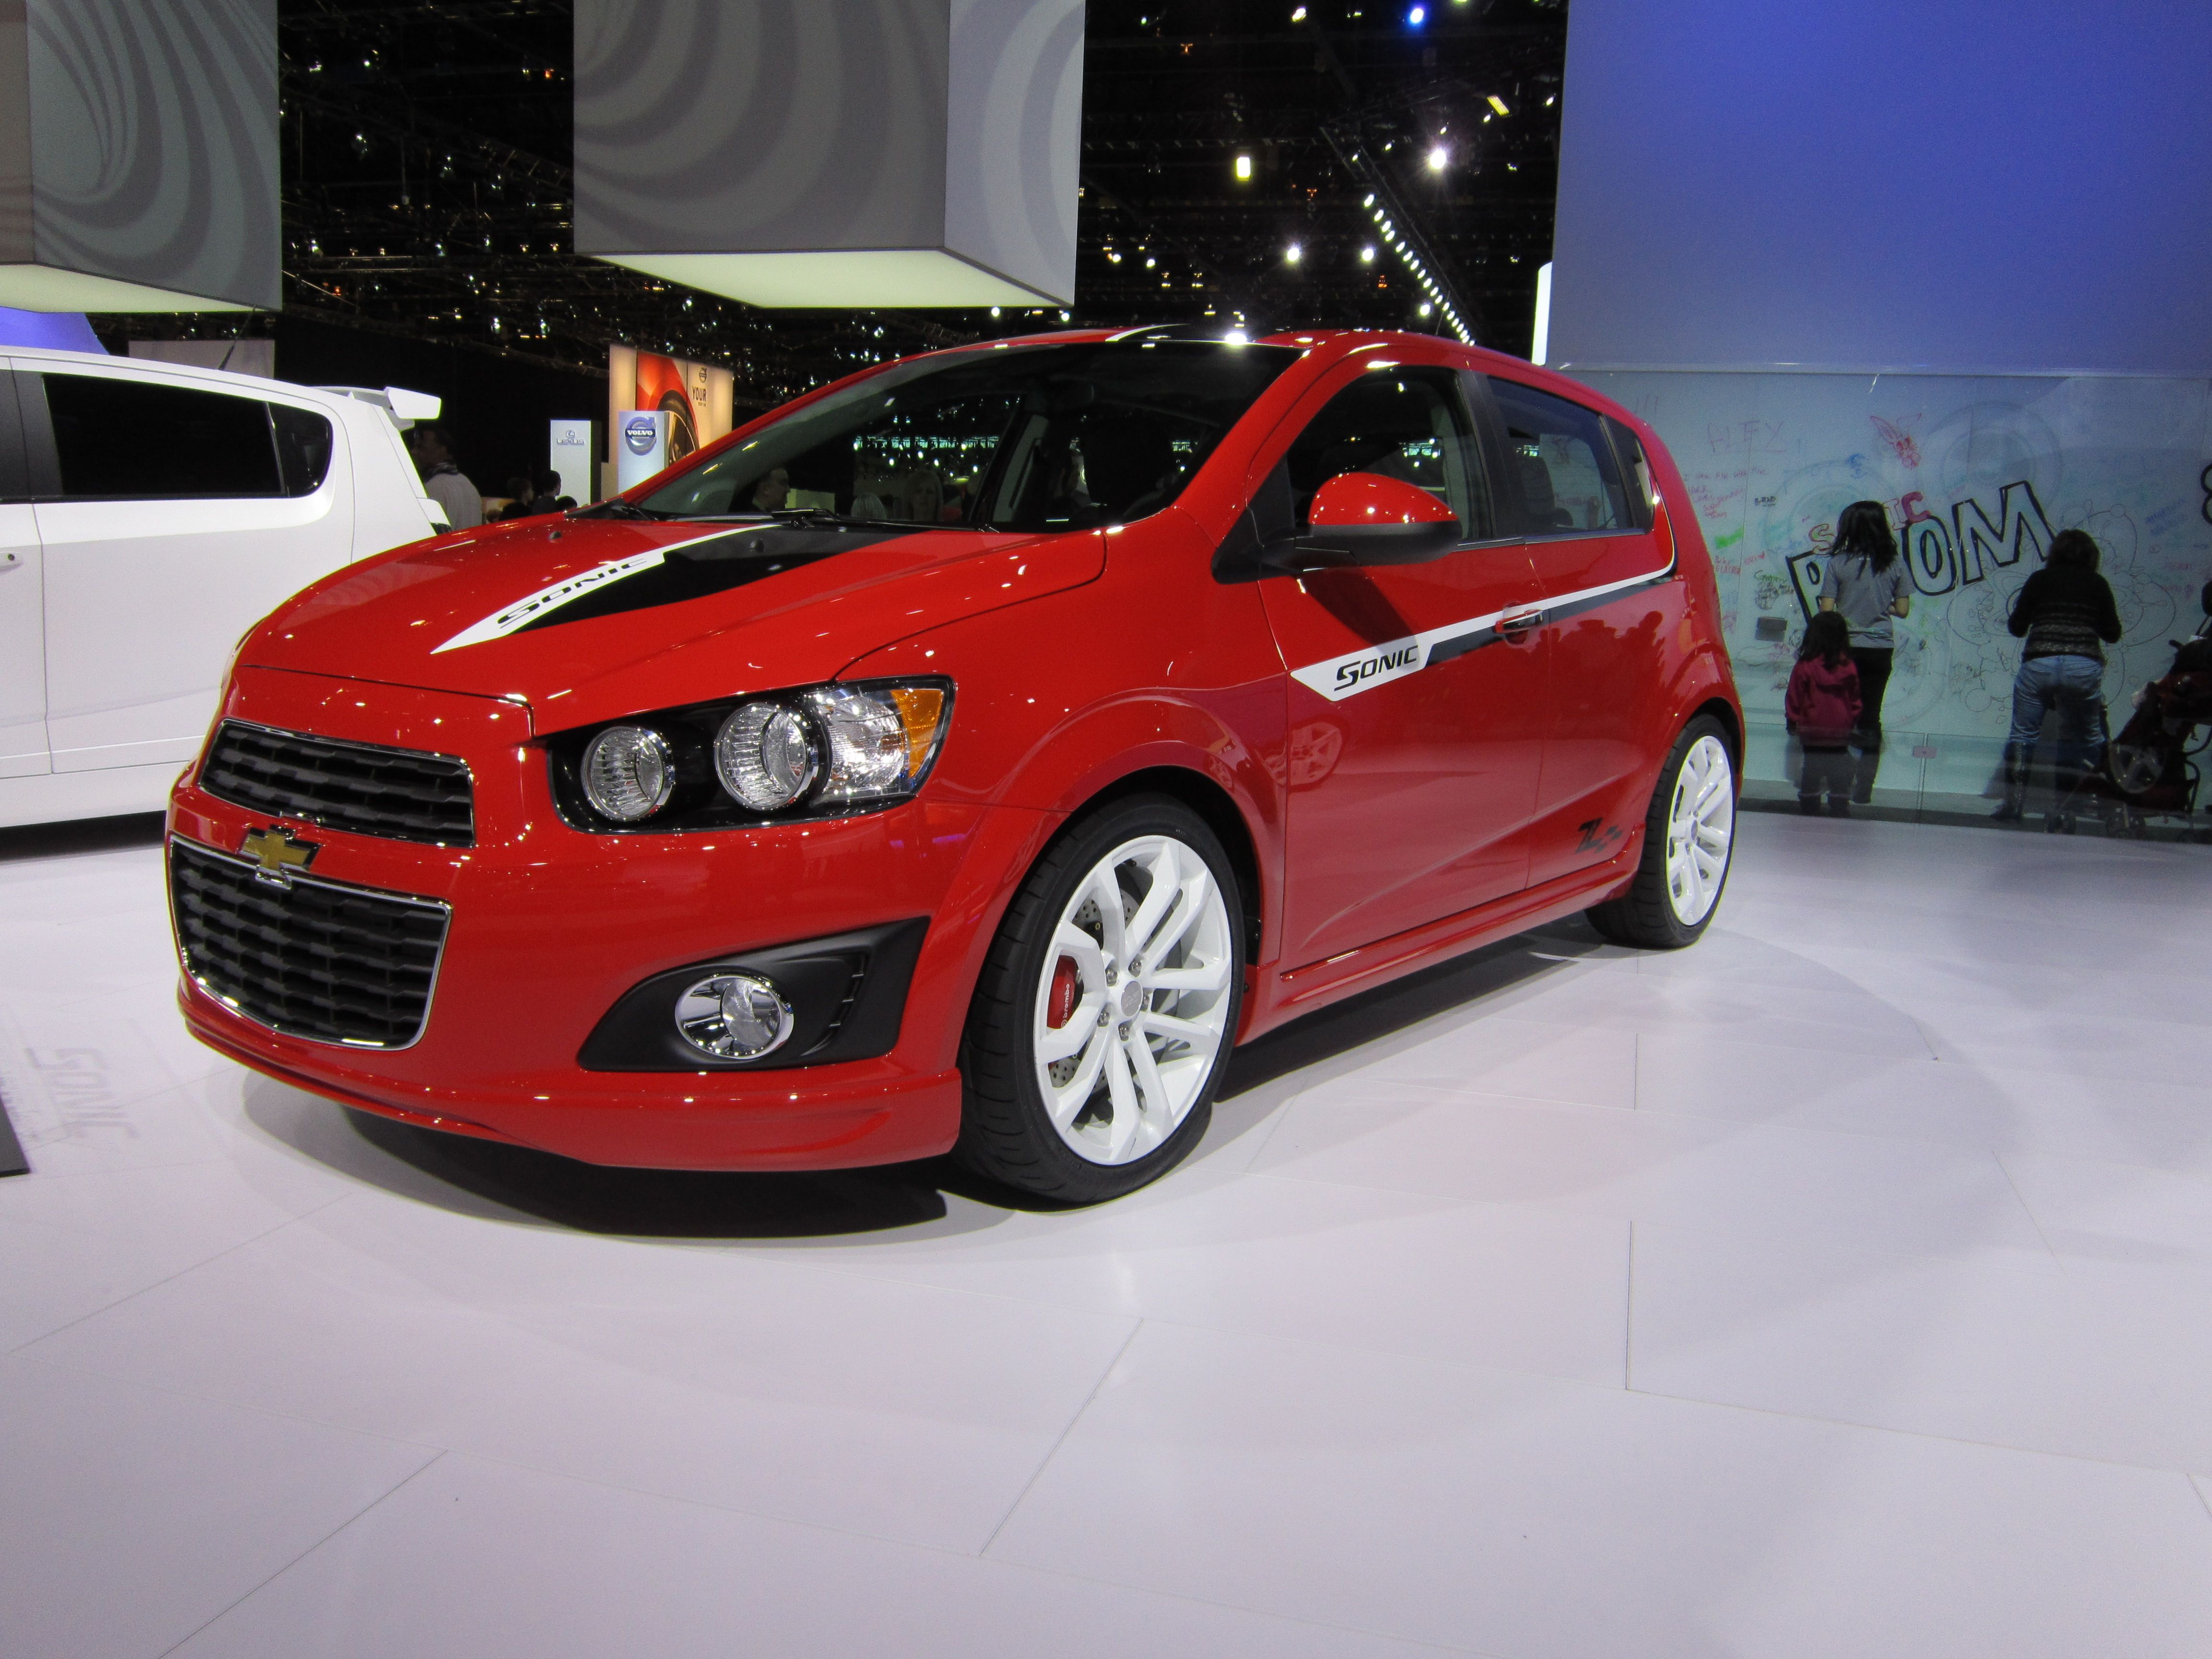 Chevy Sonic | Chevy Sonic Love | Pinterest | Chevy, Cars and Dream ...